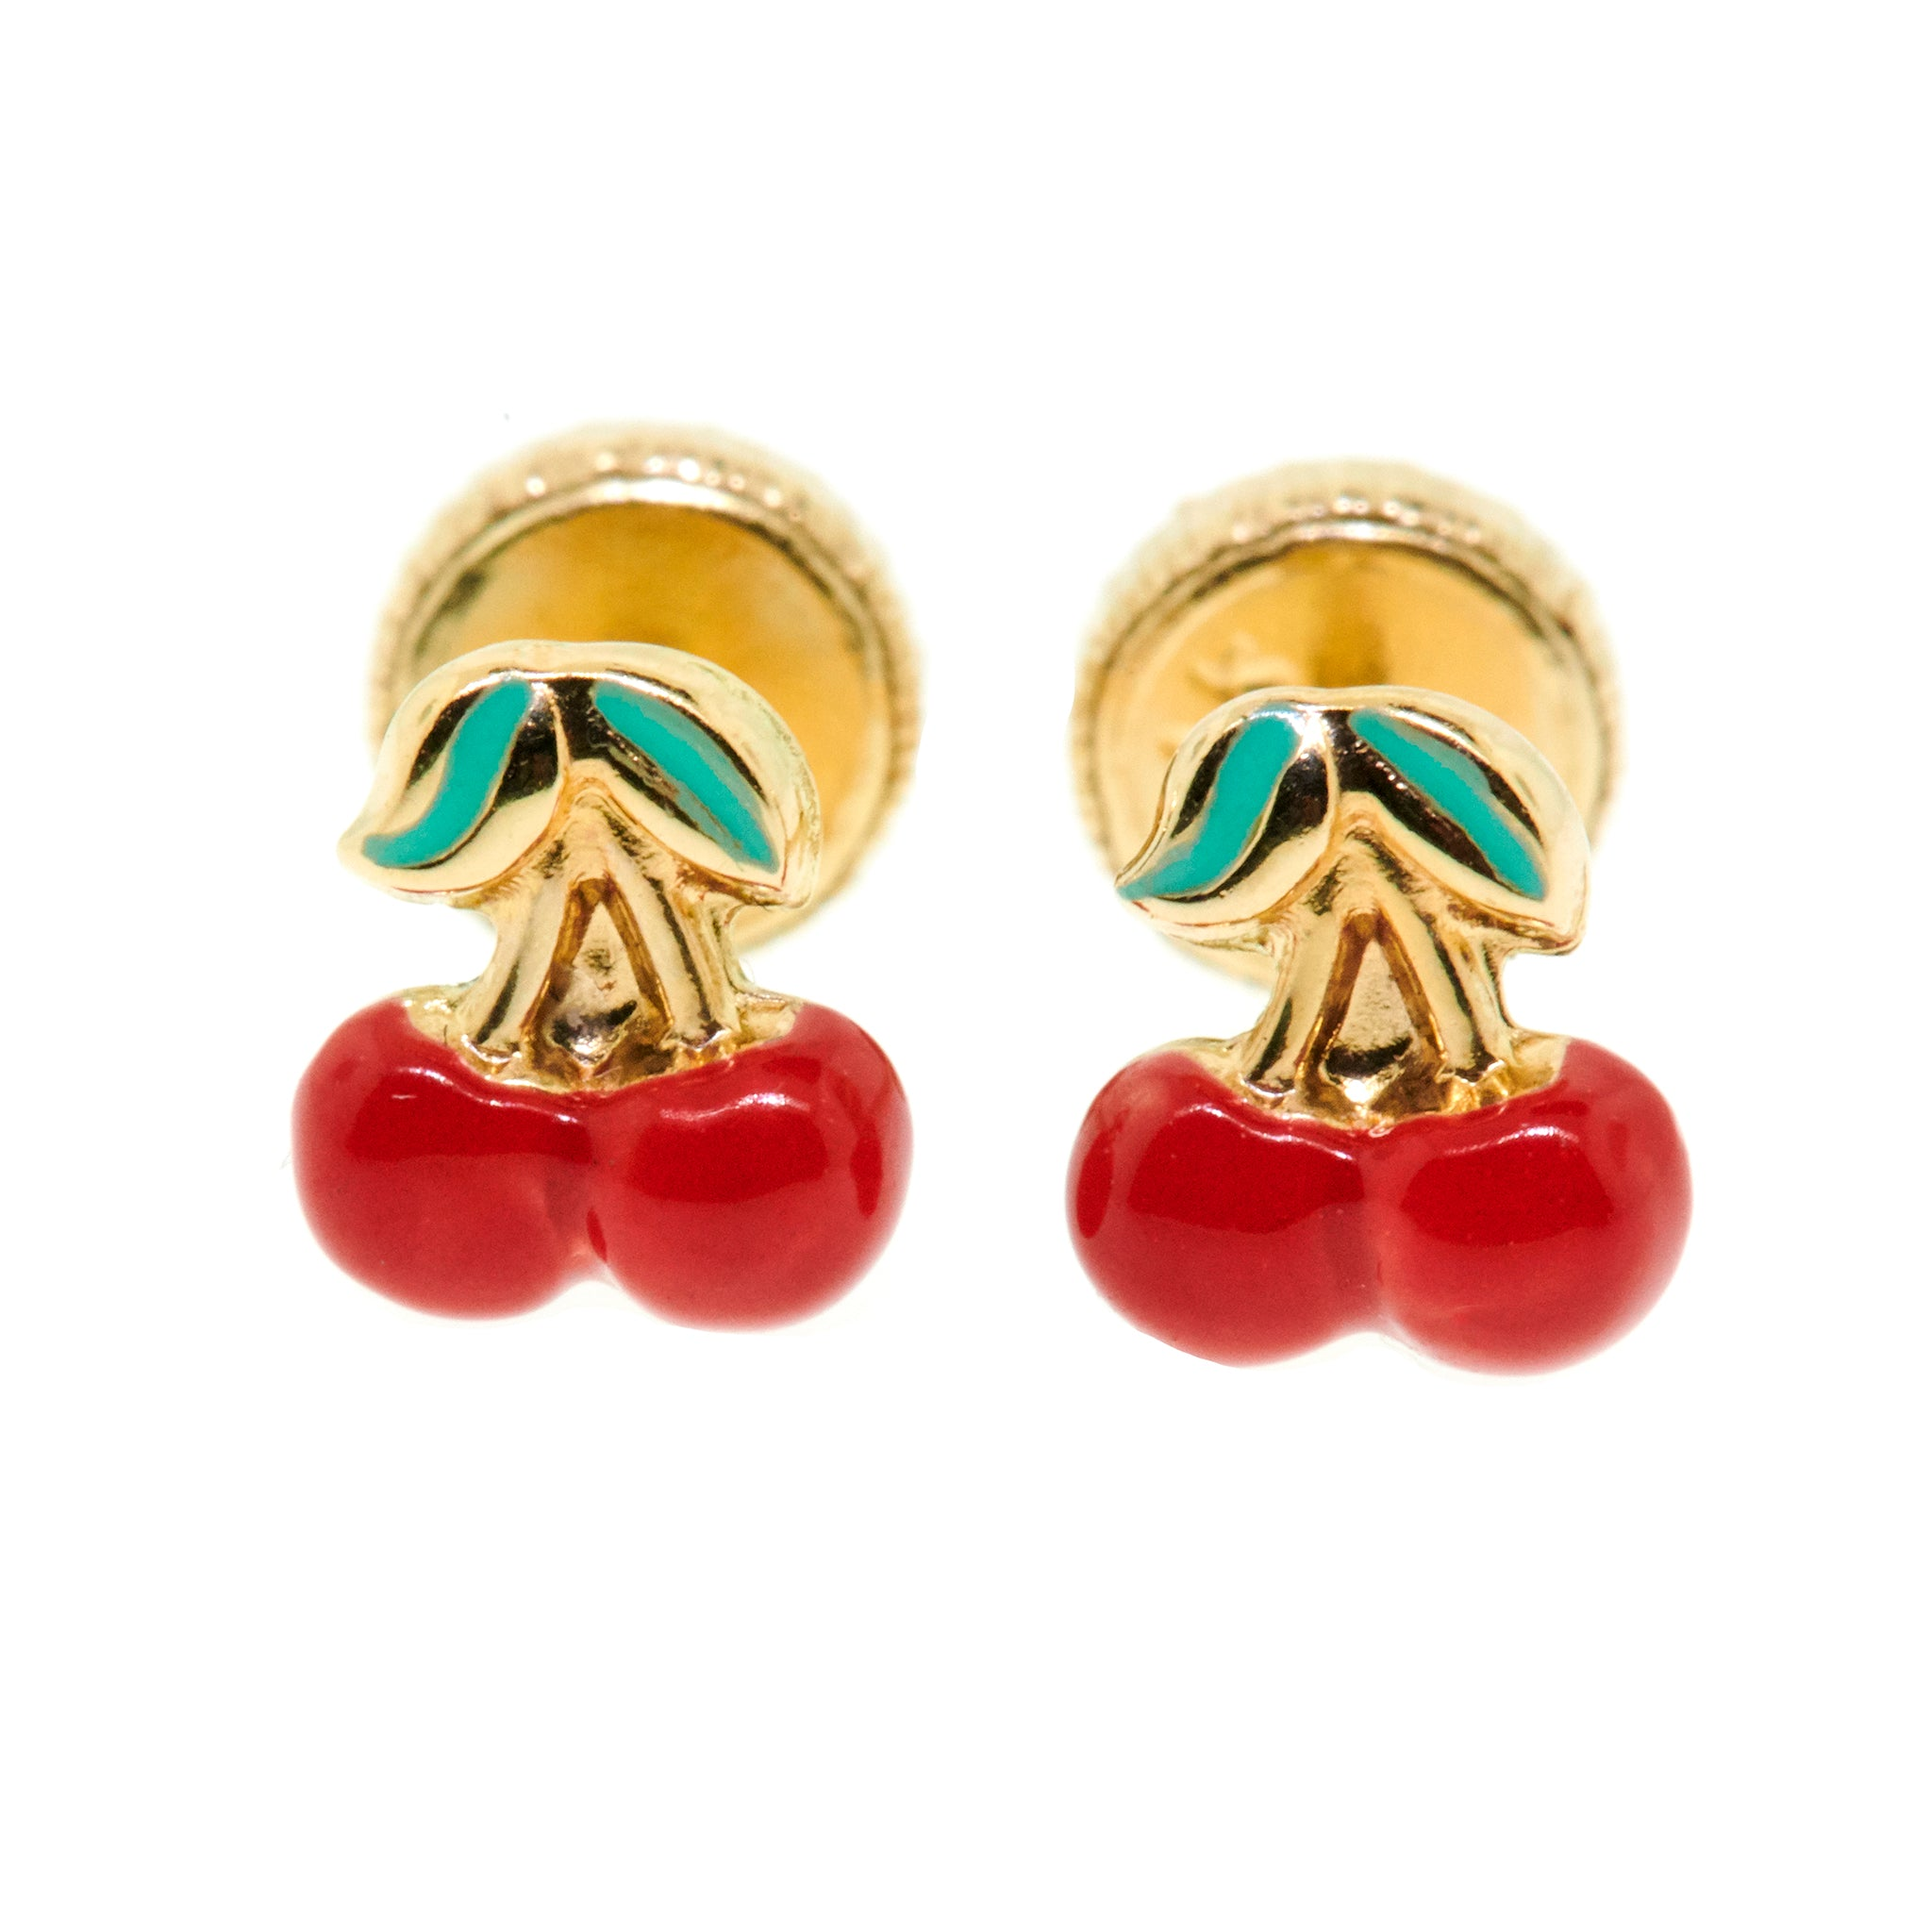 Tiny Enamel Cherry Studs